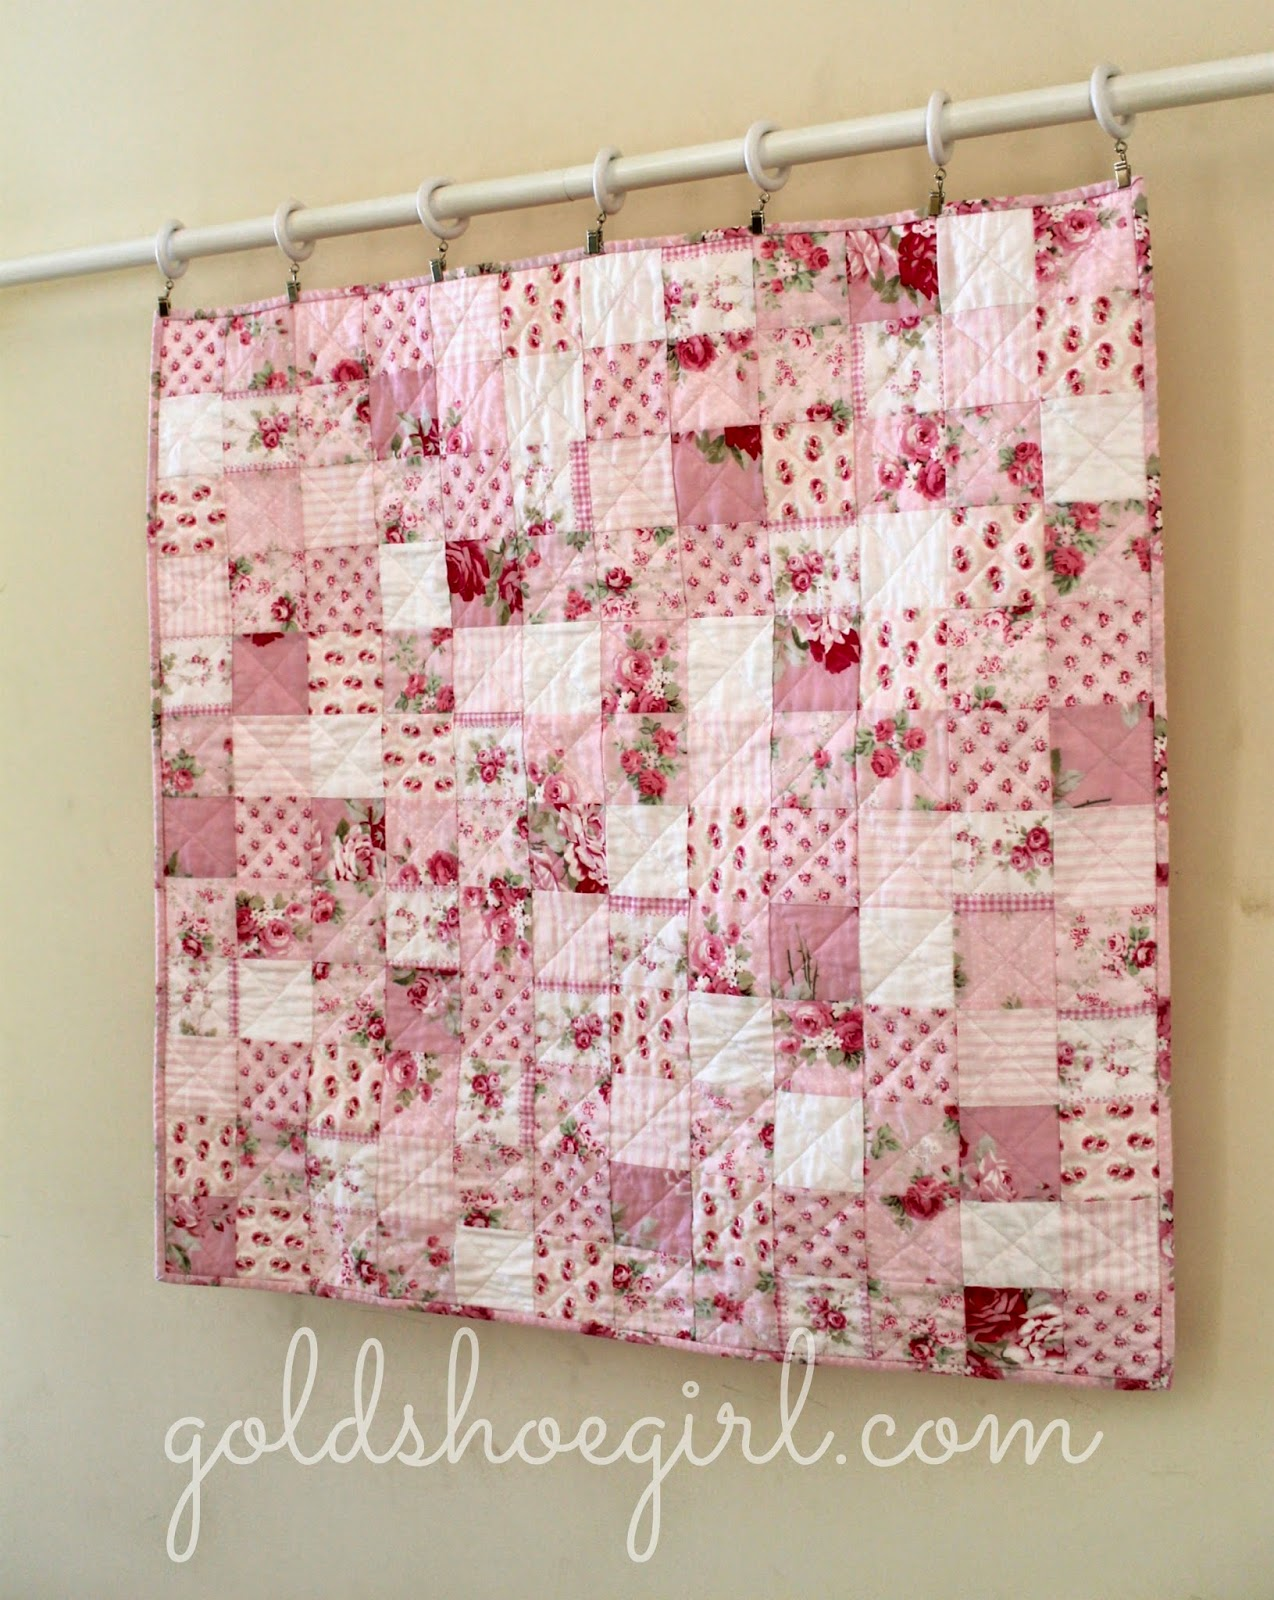 Gold Shoe Girl: Pretty in Pink Baby Girl Quilt : pink patchwork quilts - Adamdwight.com